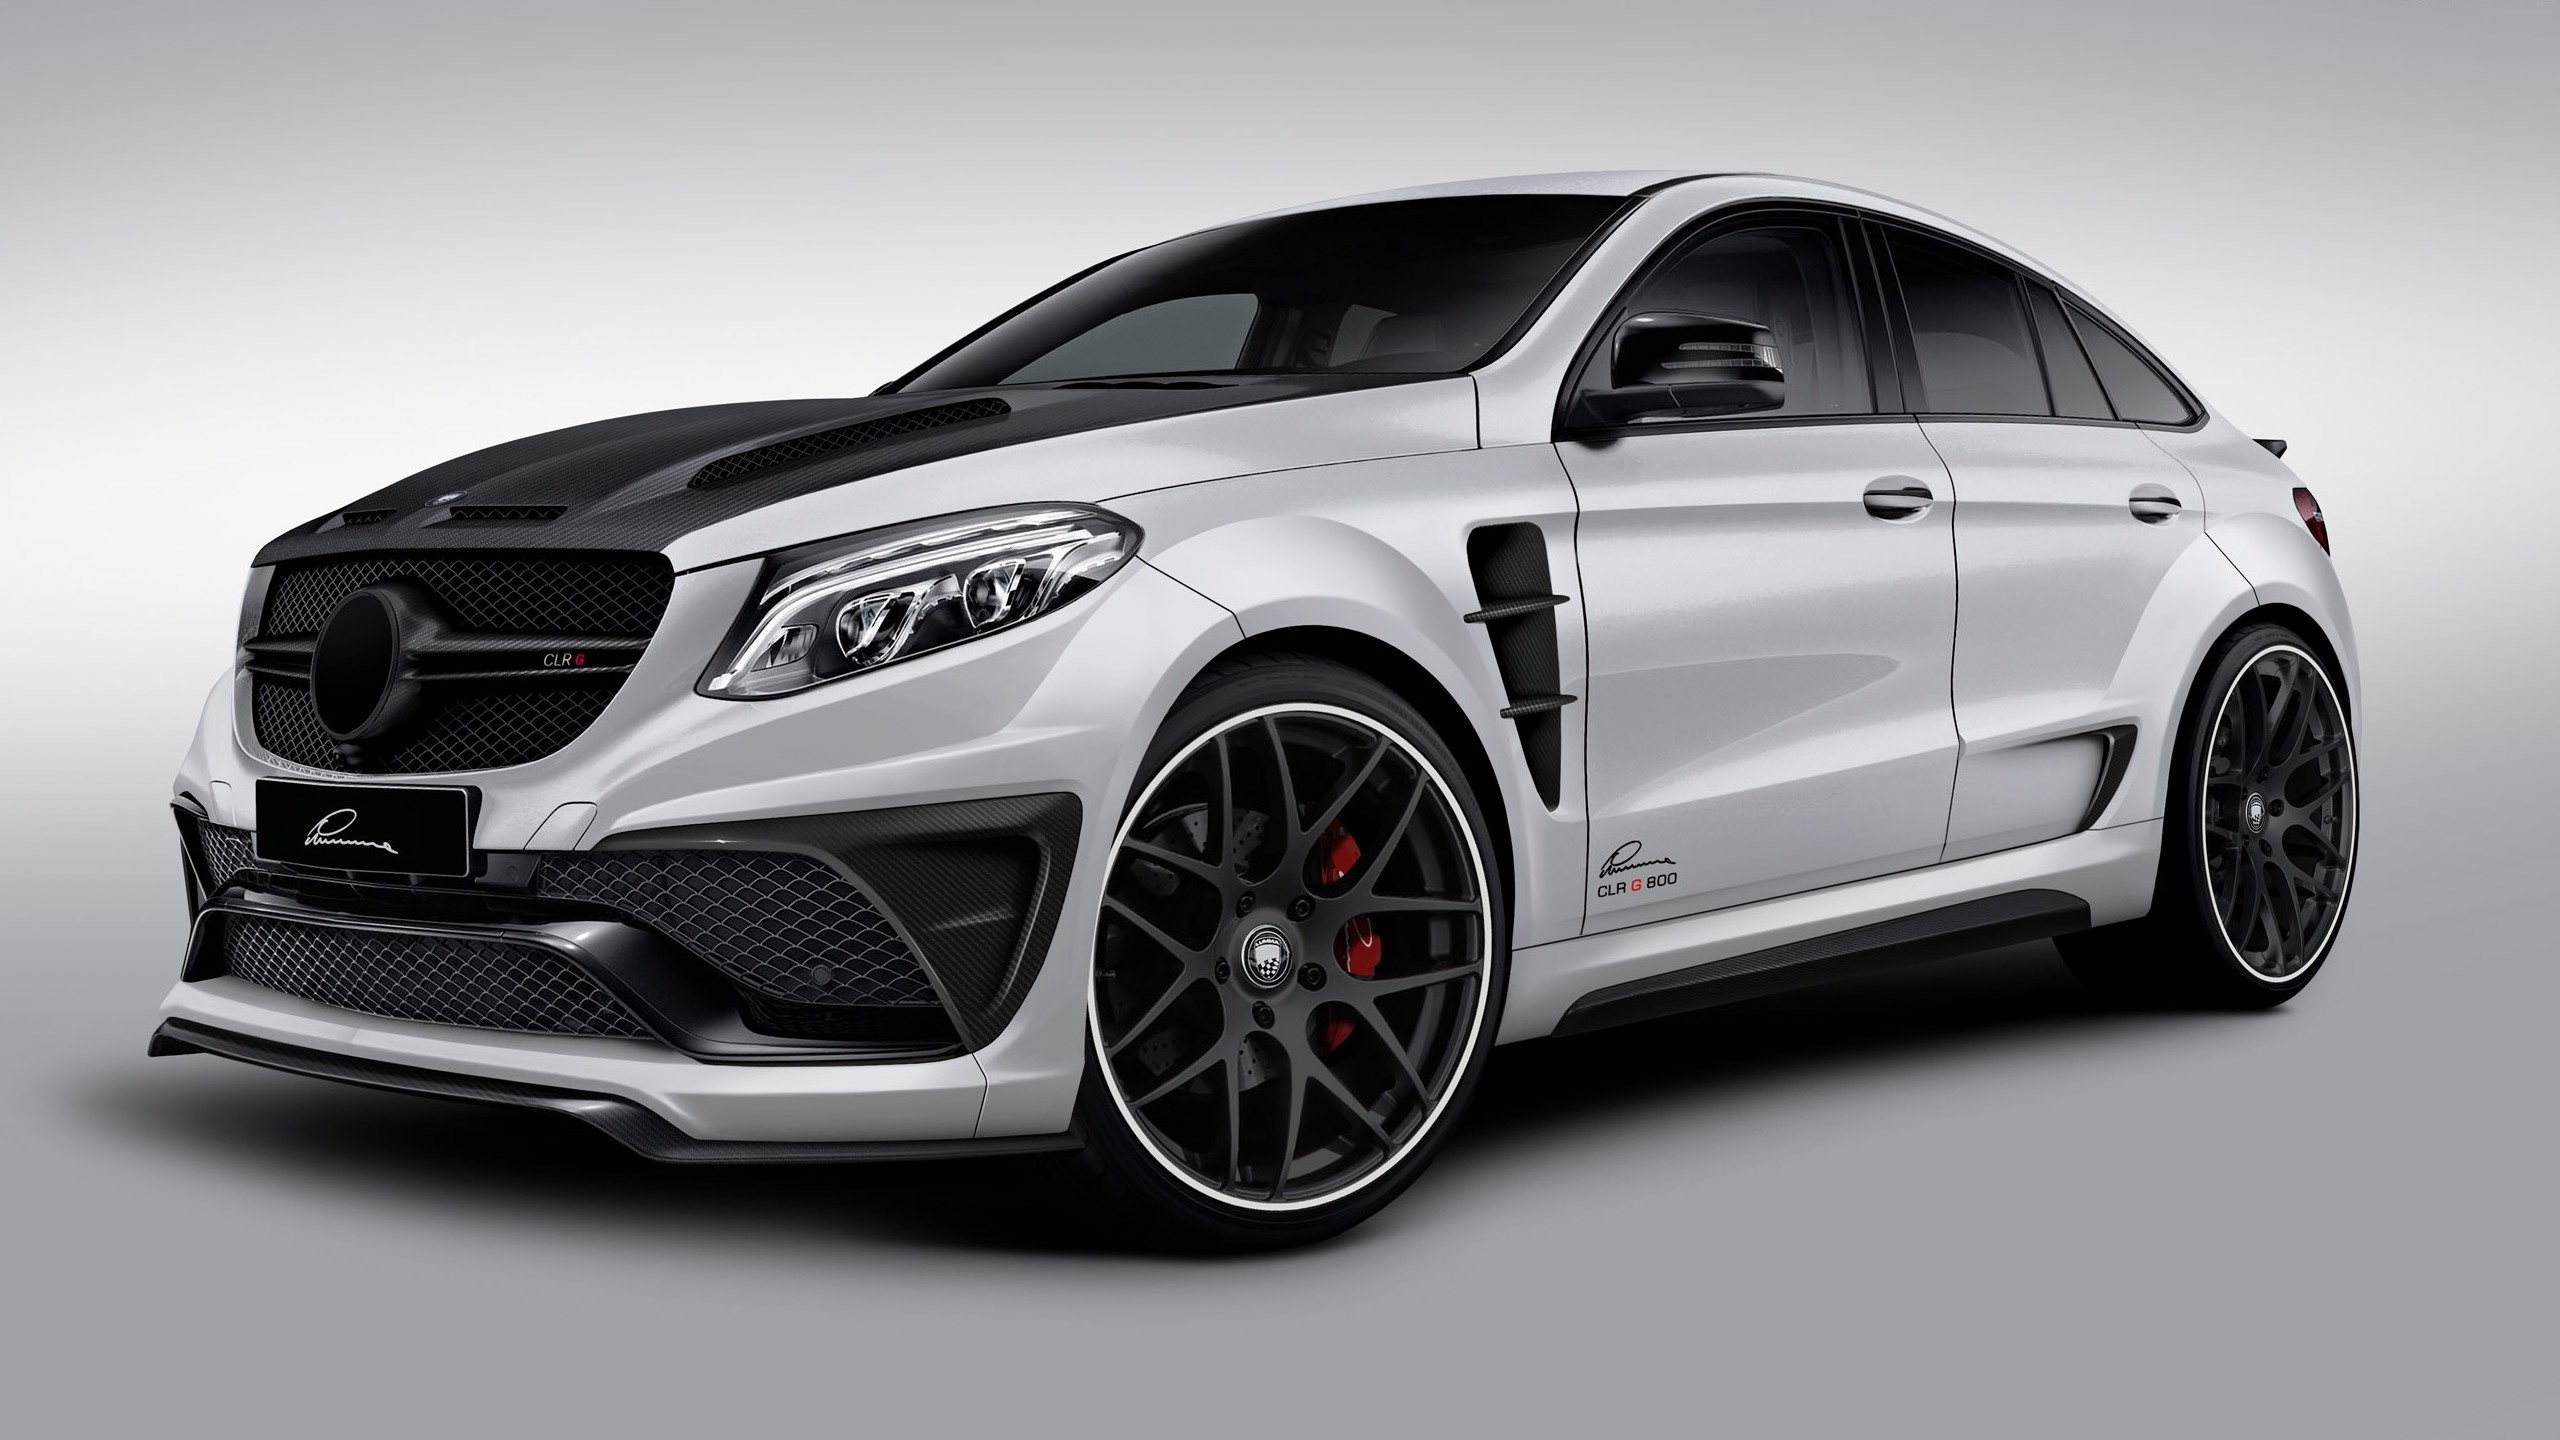 Mercedes-Benz GLE coupe HD Wallpapers | 7wallpapers.net